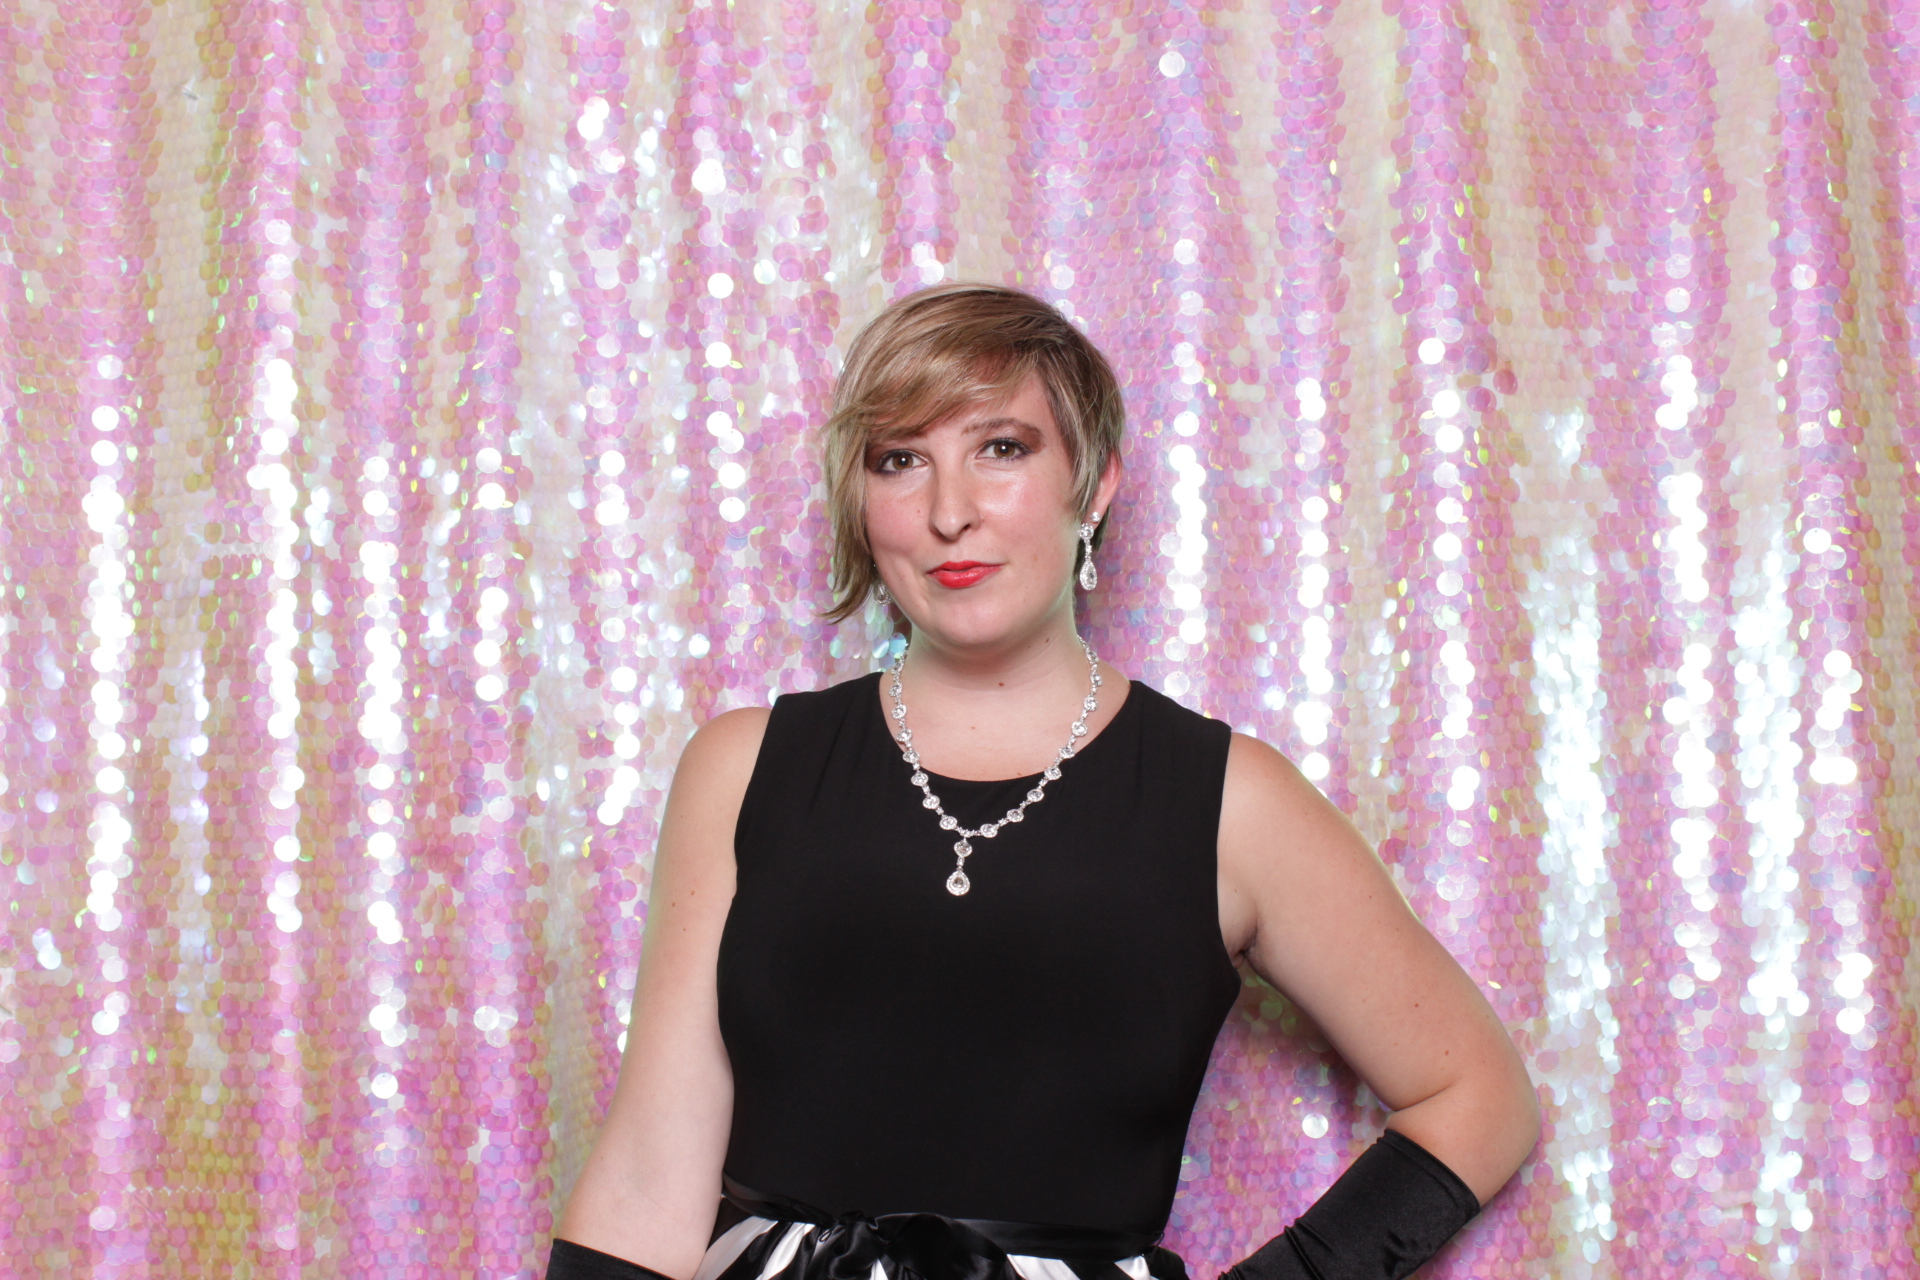 HOT IRIDESCENT SEQUINS BACKDROP   HOT PINK PHOTO BOOTH   DC PHOTO BOOTH RENTAL